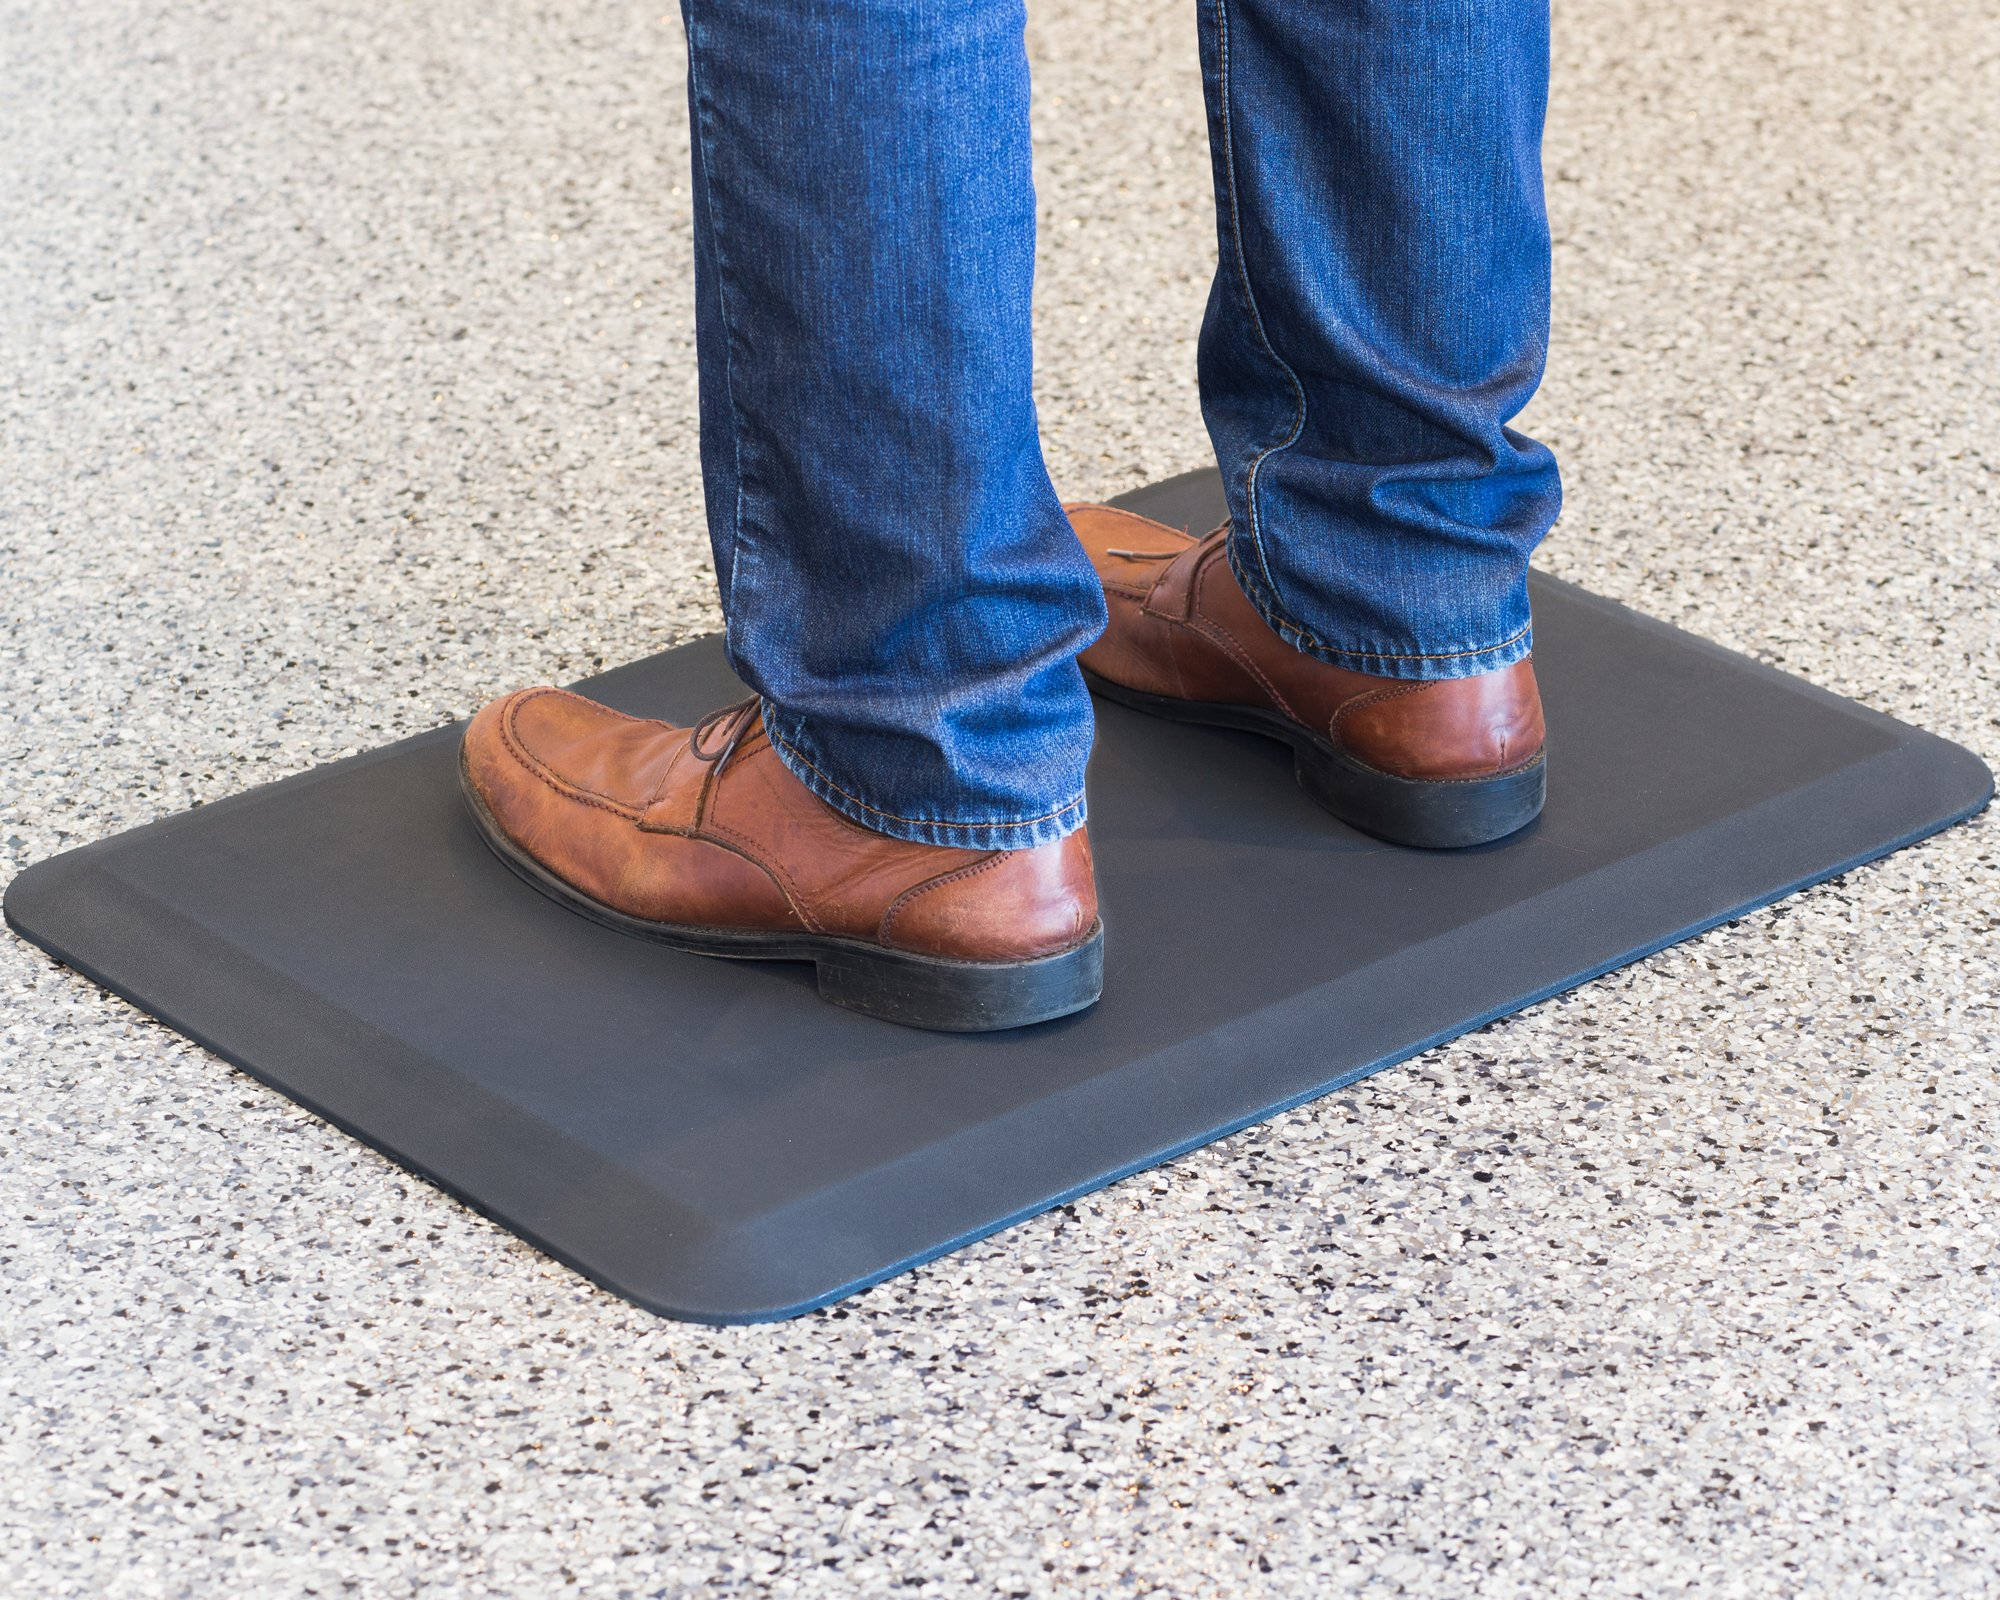 Anti-Fatigue Memory Foam Floor Mat - Black Smooth Durable Multi-Surface Feet Knees & Joints Relief Mat For Your Kitchens, Workstations, Bathroom & More - 19.5'' Height x 29.5'' Width - .75'' Thickness by V-Desk